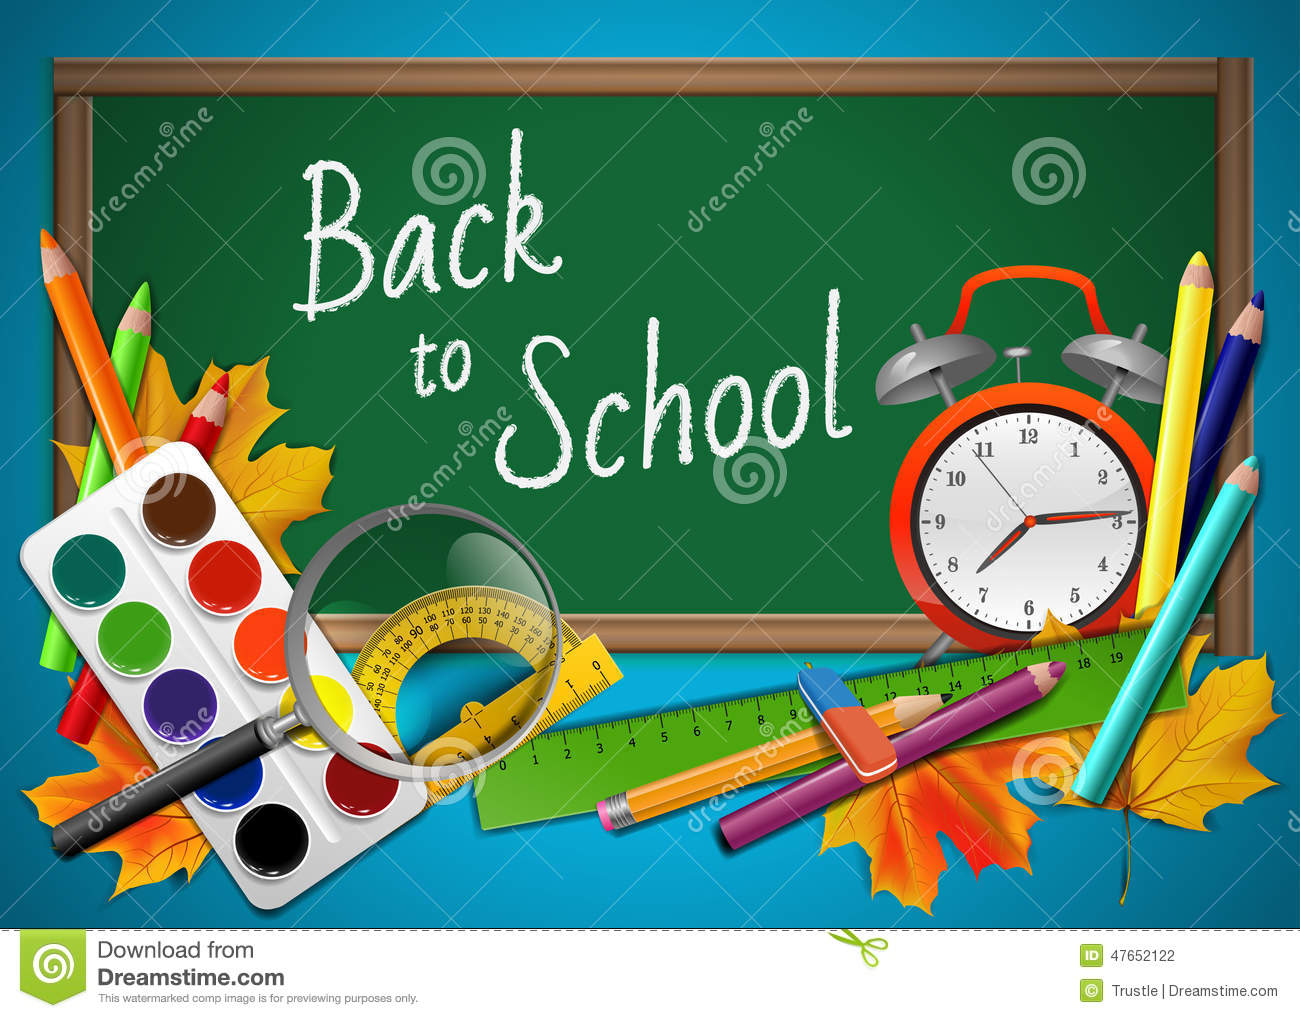 Back to school background with tools and board, vector illustration.